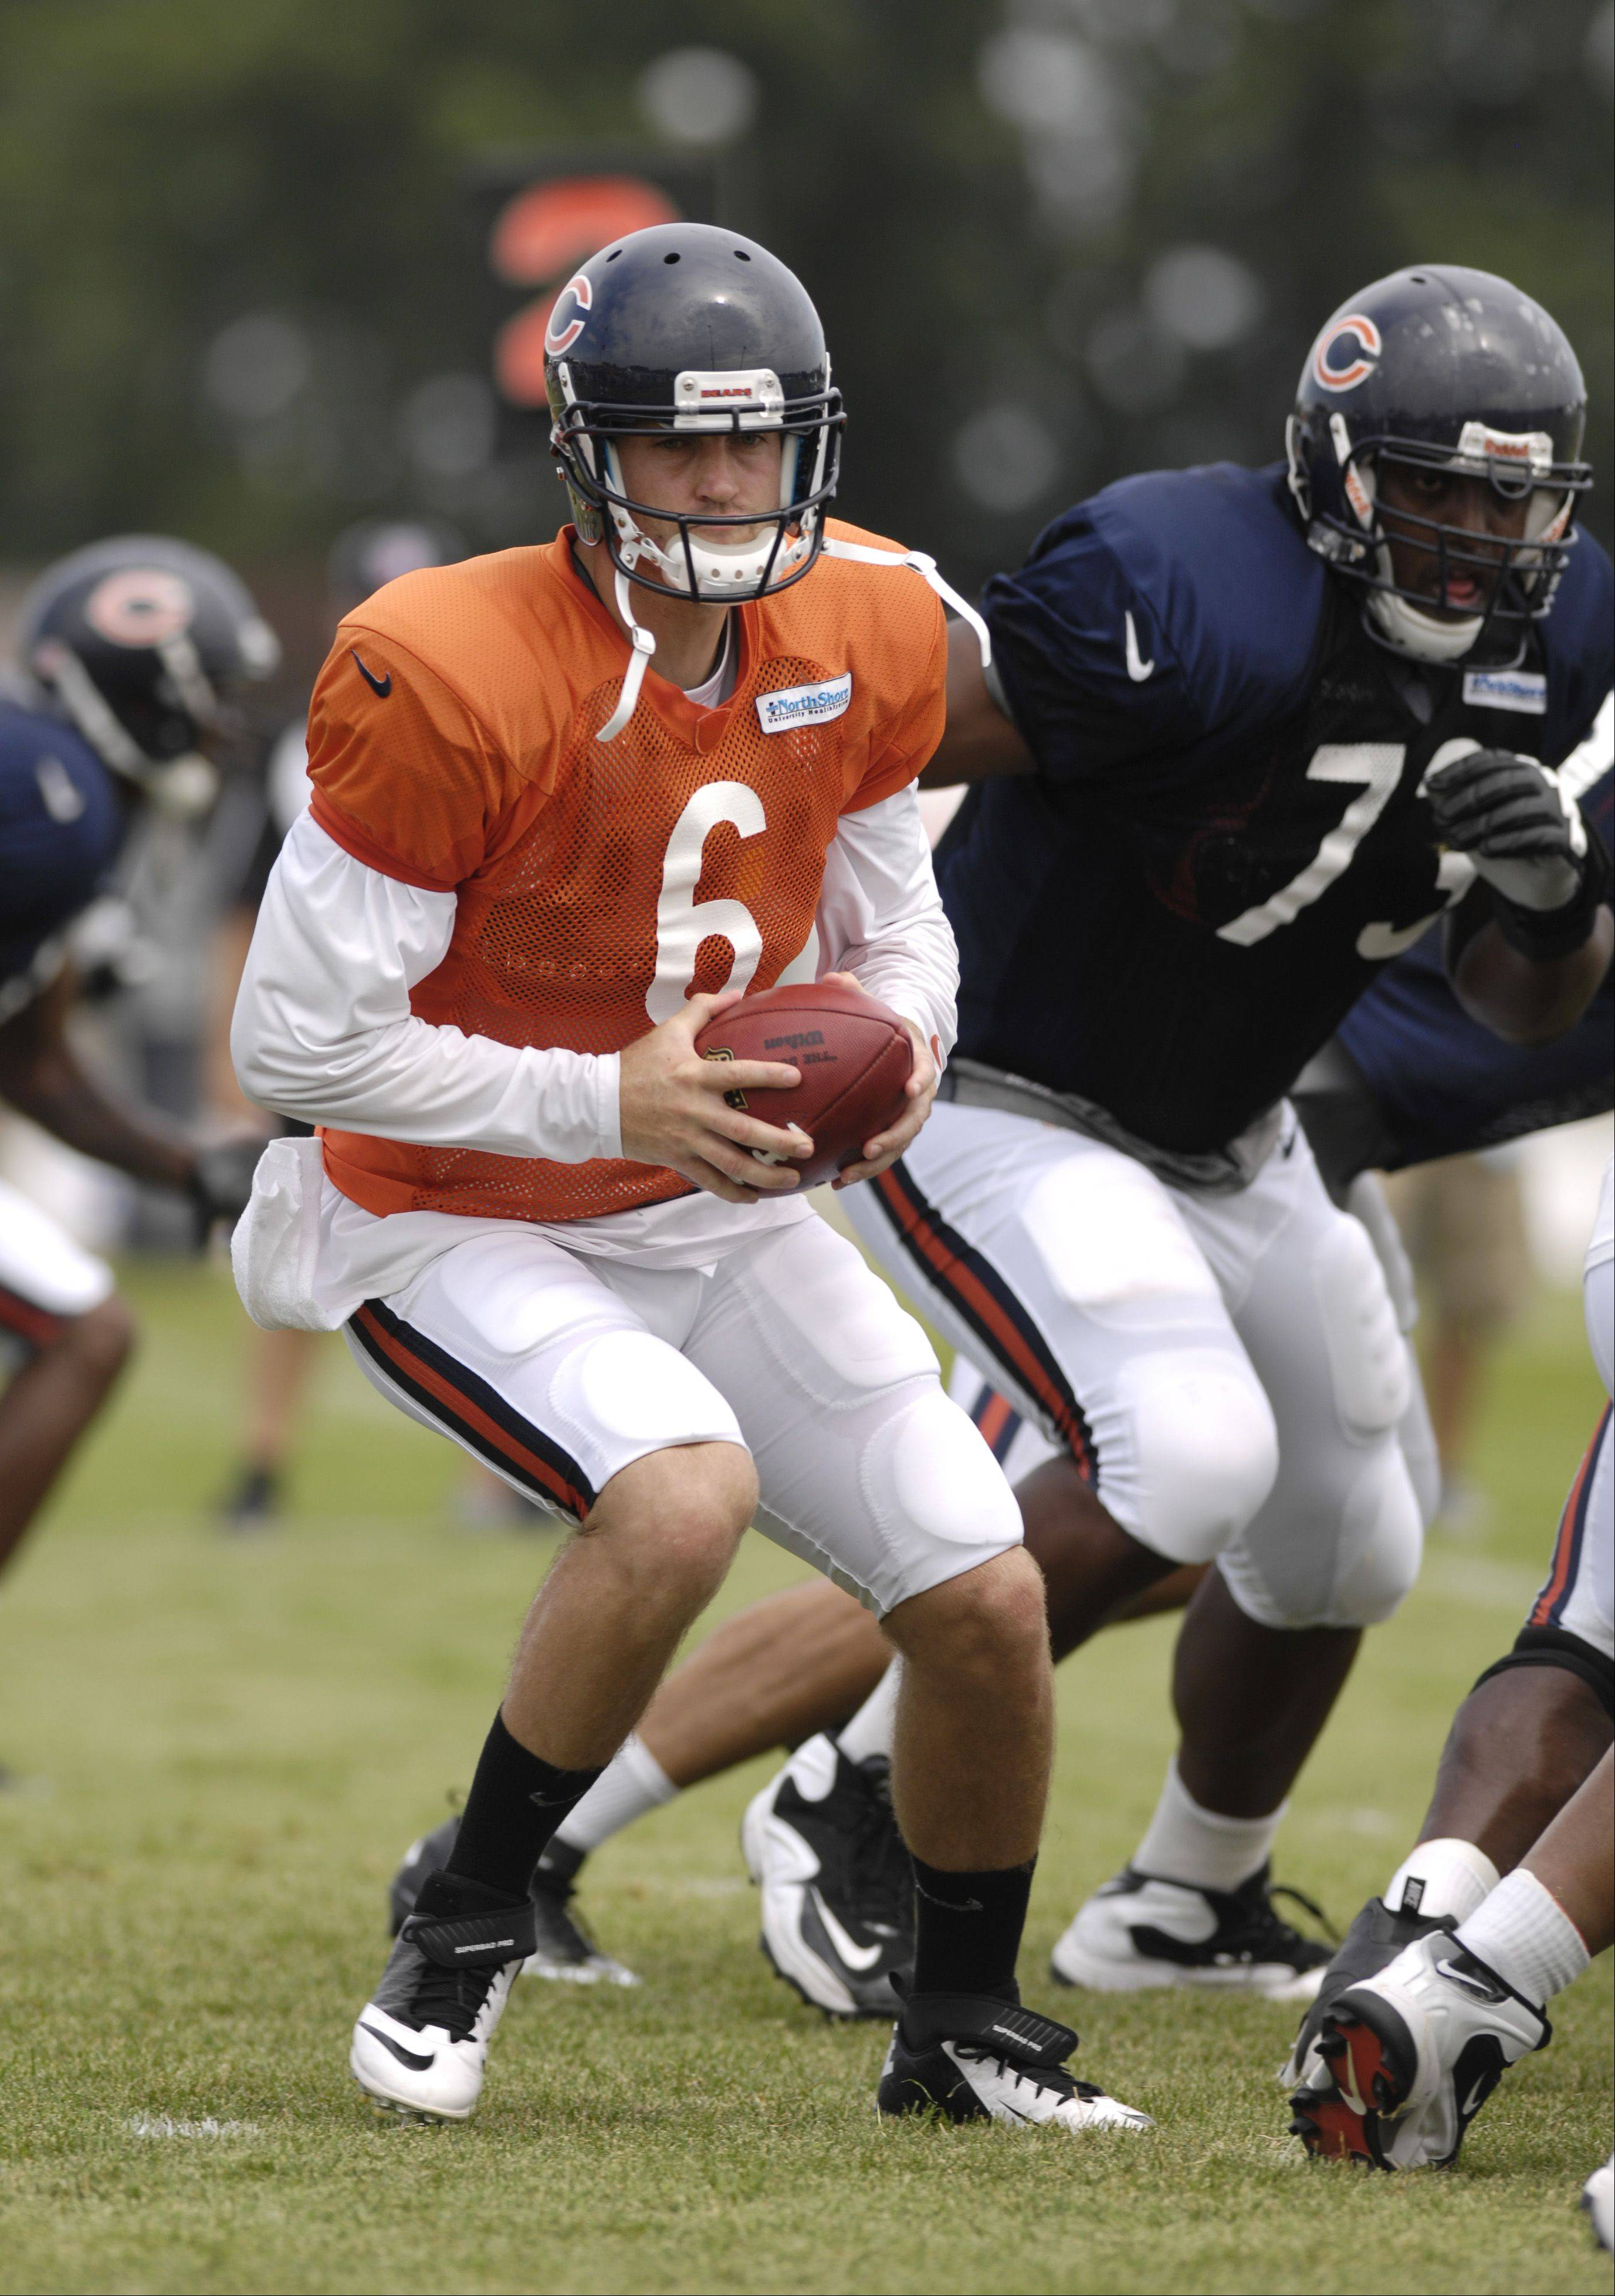 Bears quarterback Jay Cutler and his teammates will return to training camp at Olivet Nazarene University in Bourbannais on July 26.